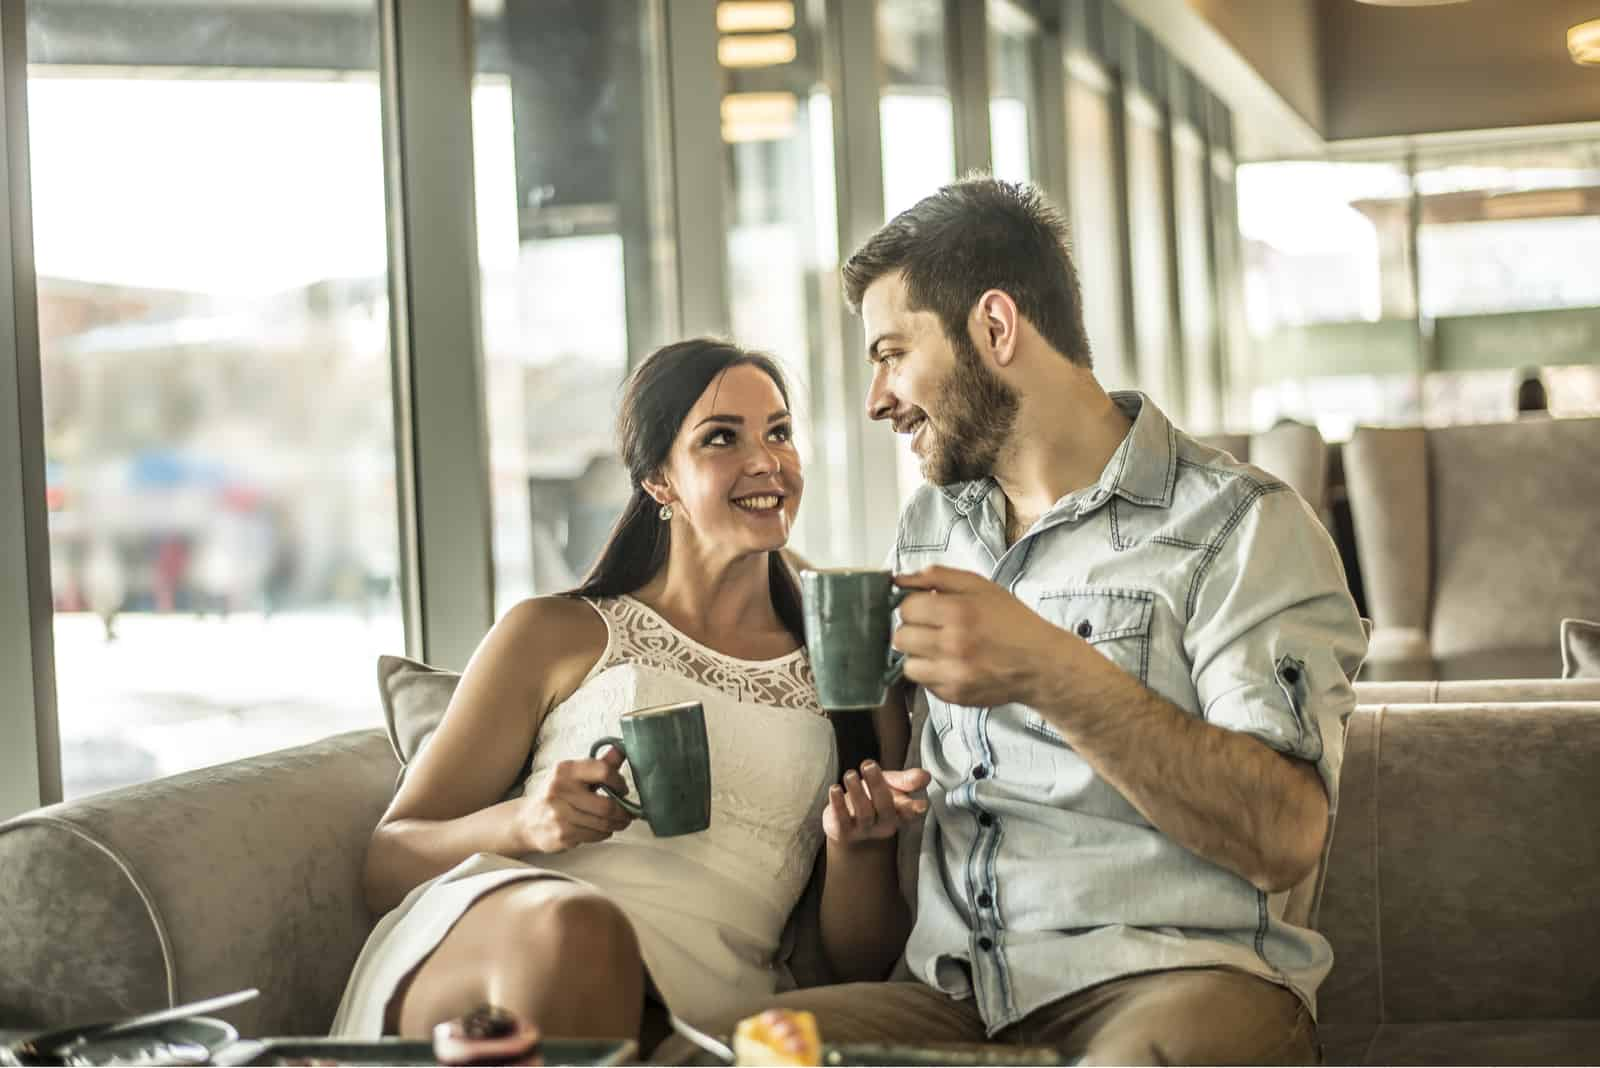 a smiling man and woman sit on the couch and drink coffee